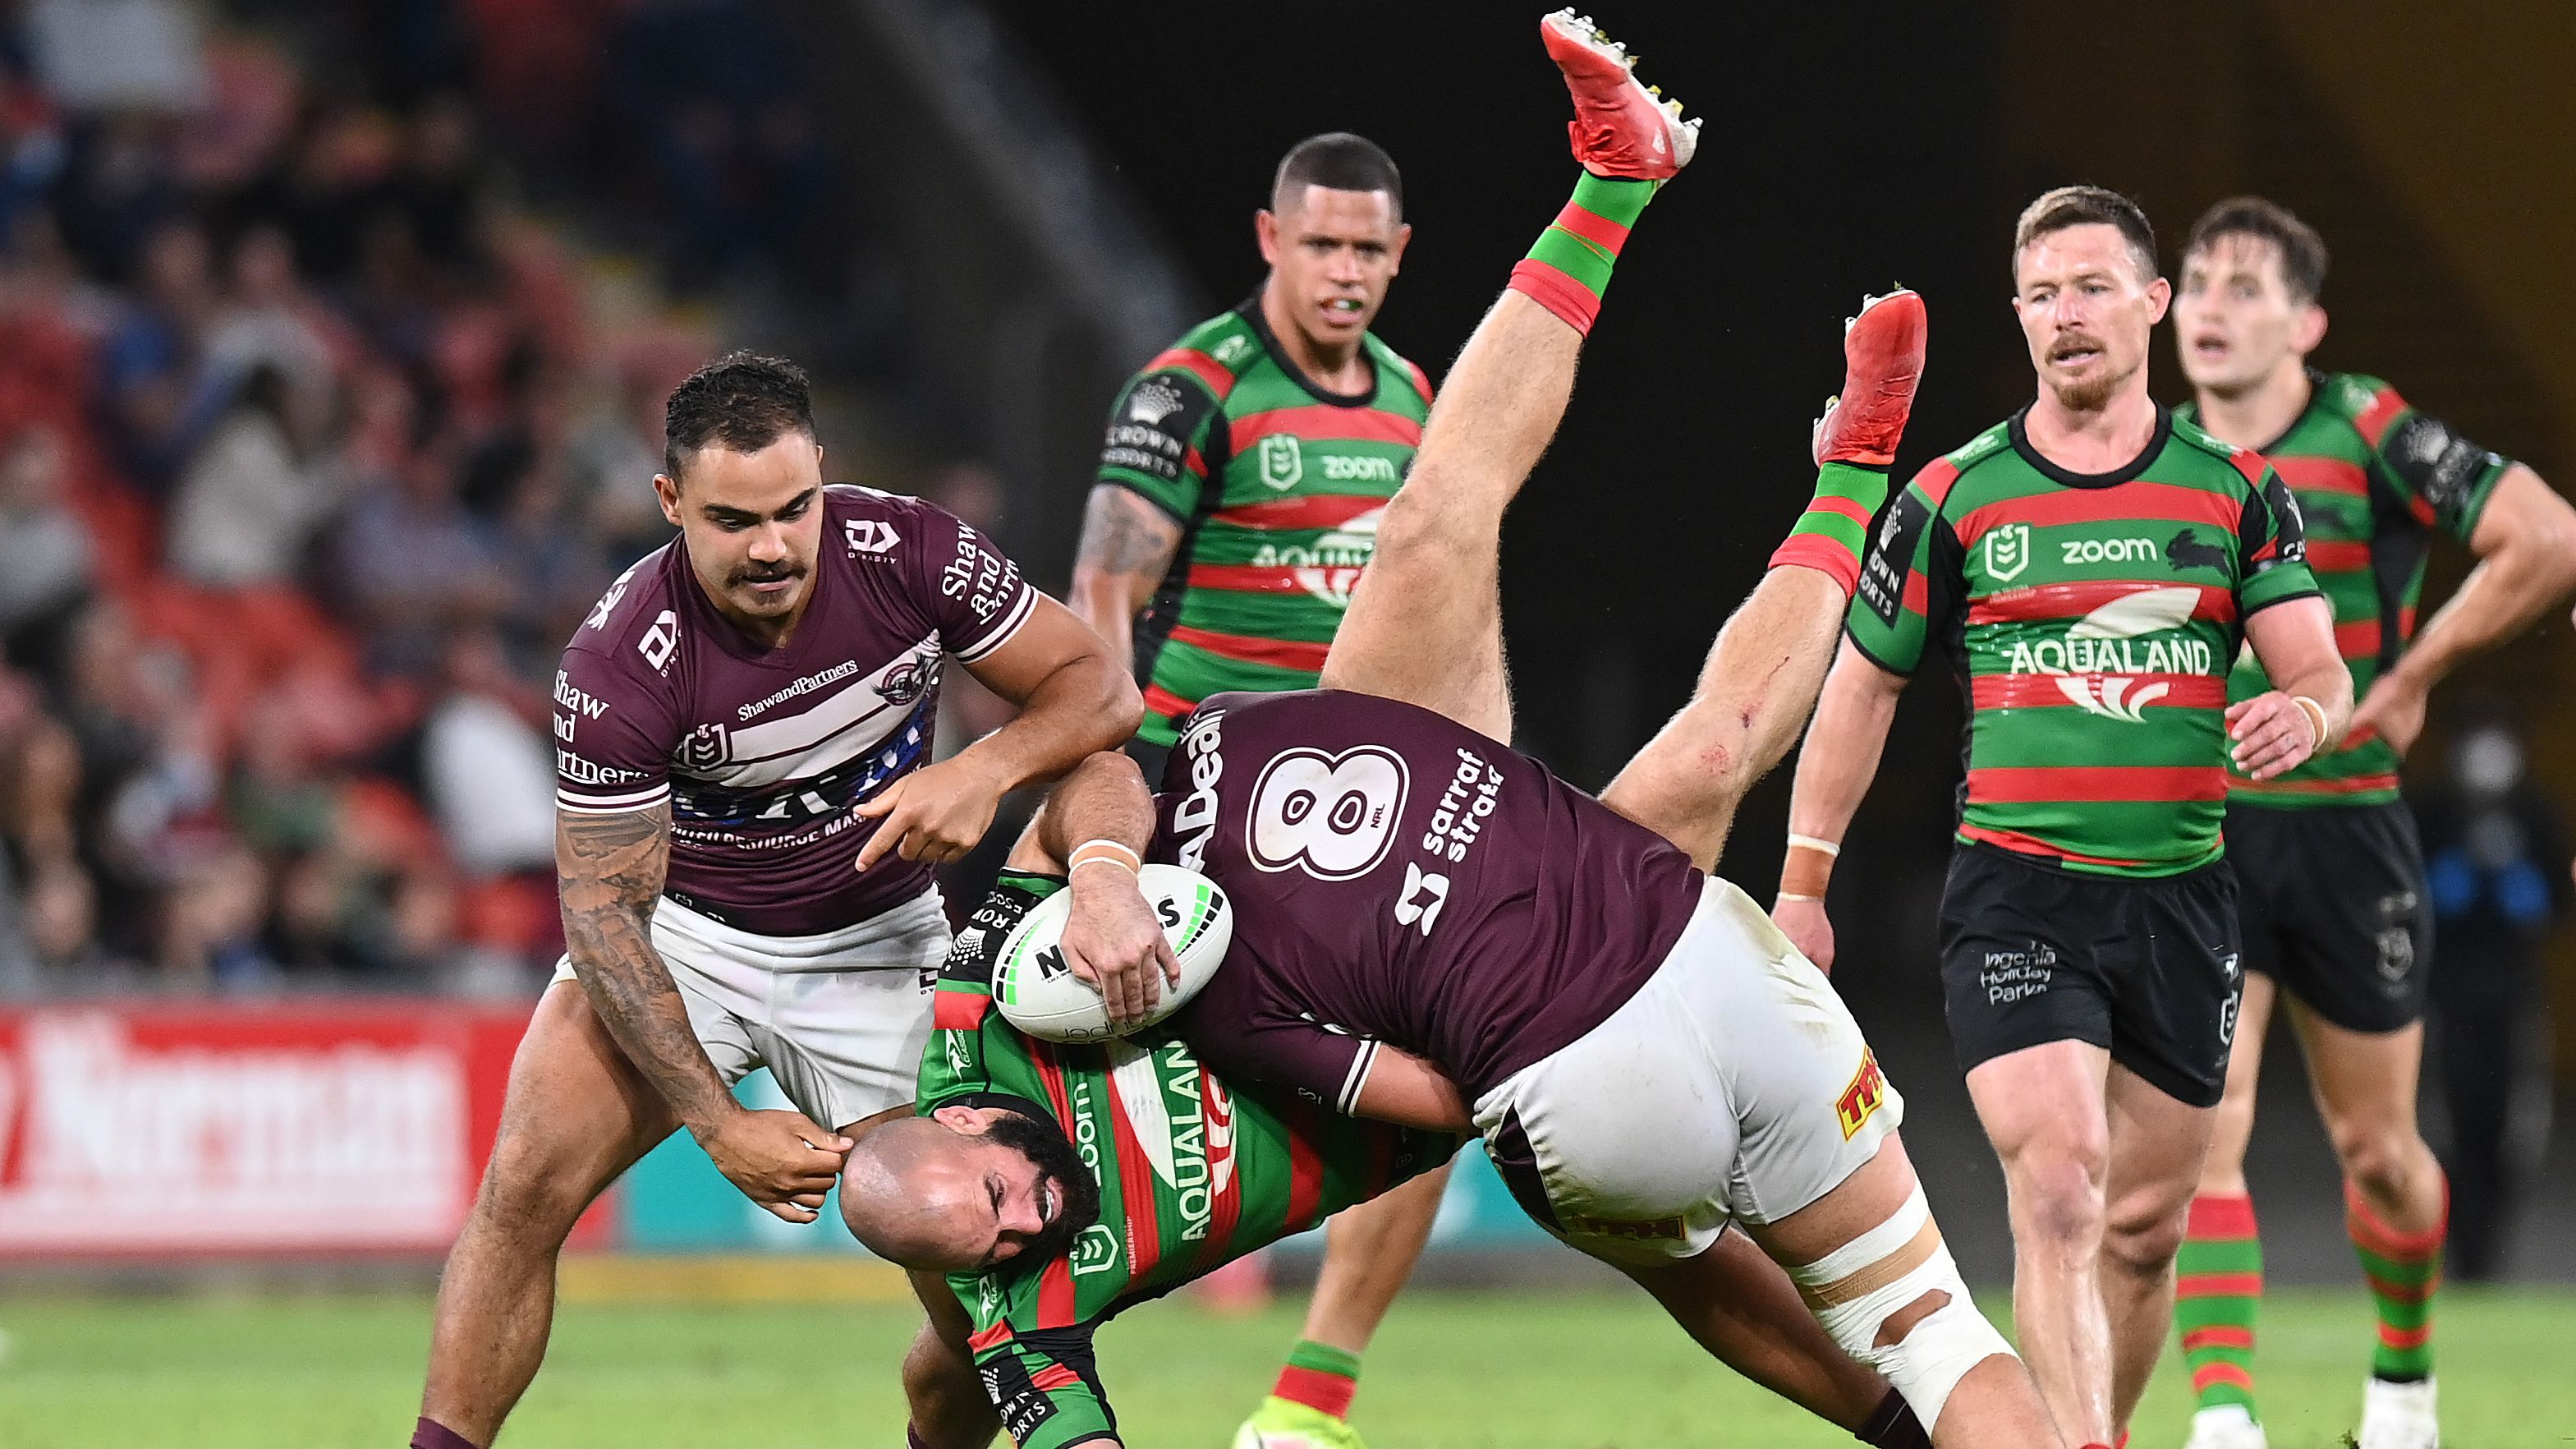 Manly star faces hefty ban after ugly tackle